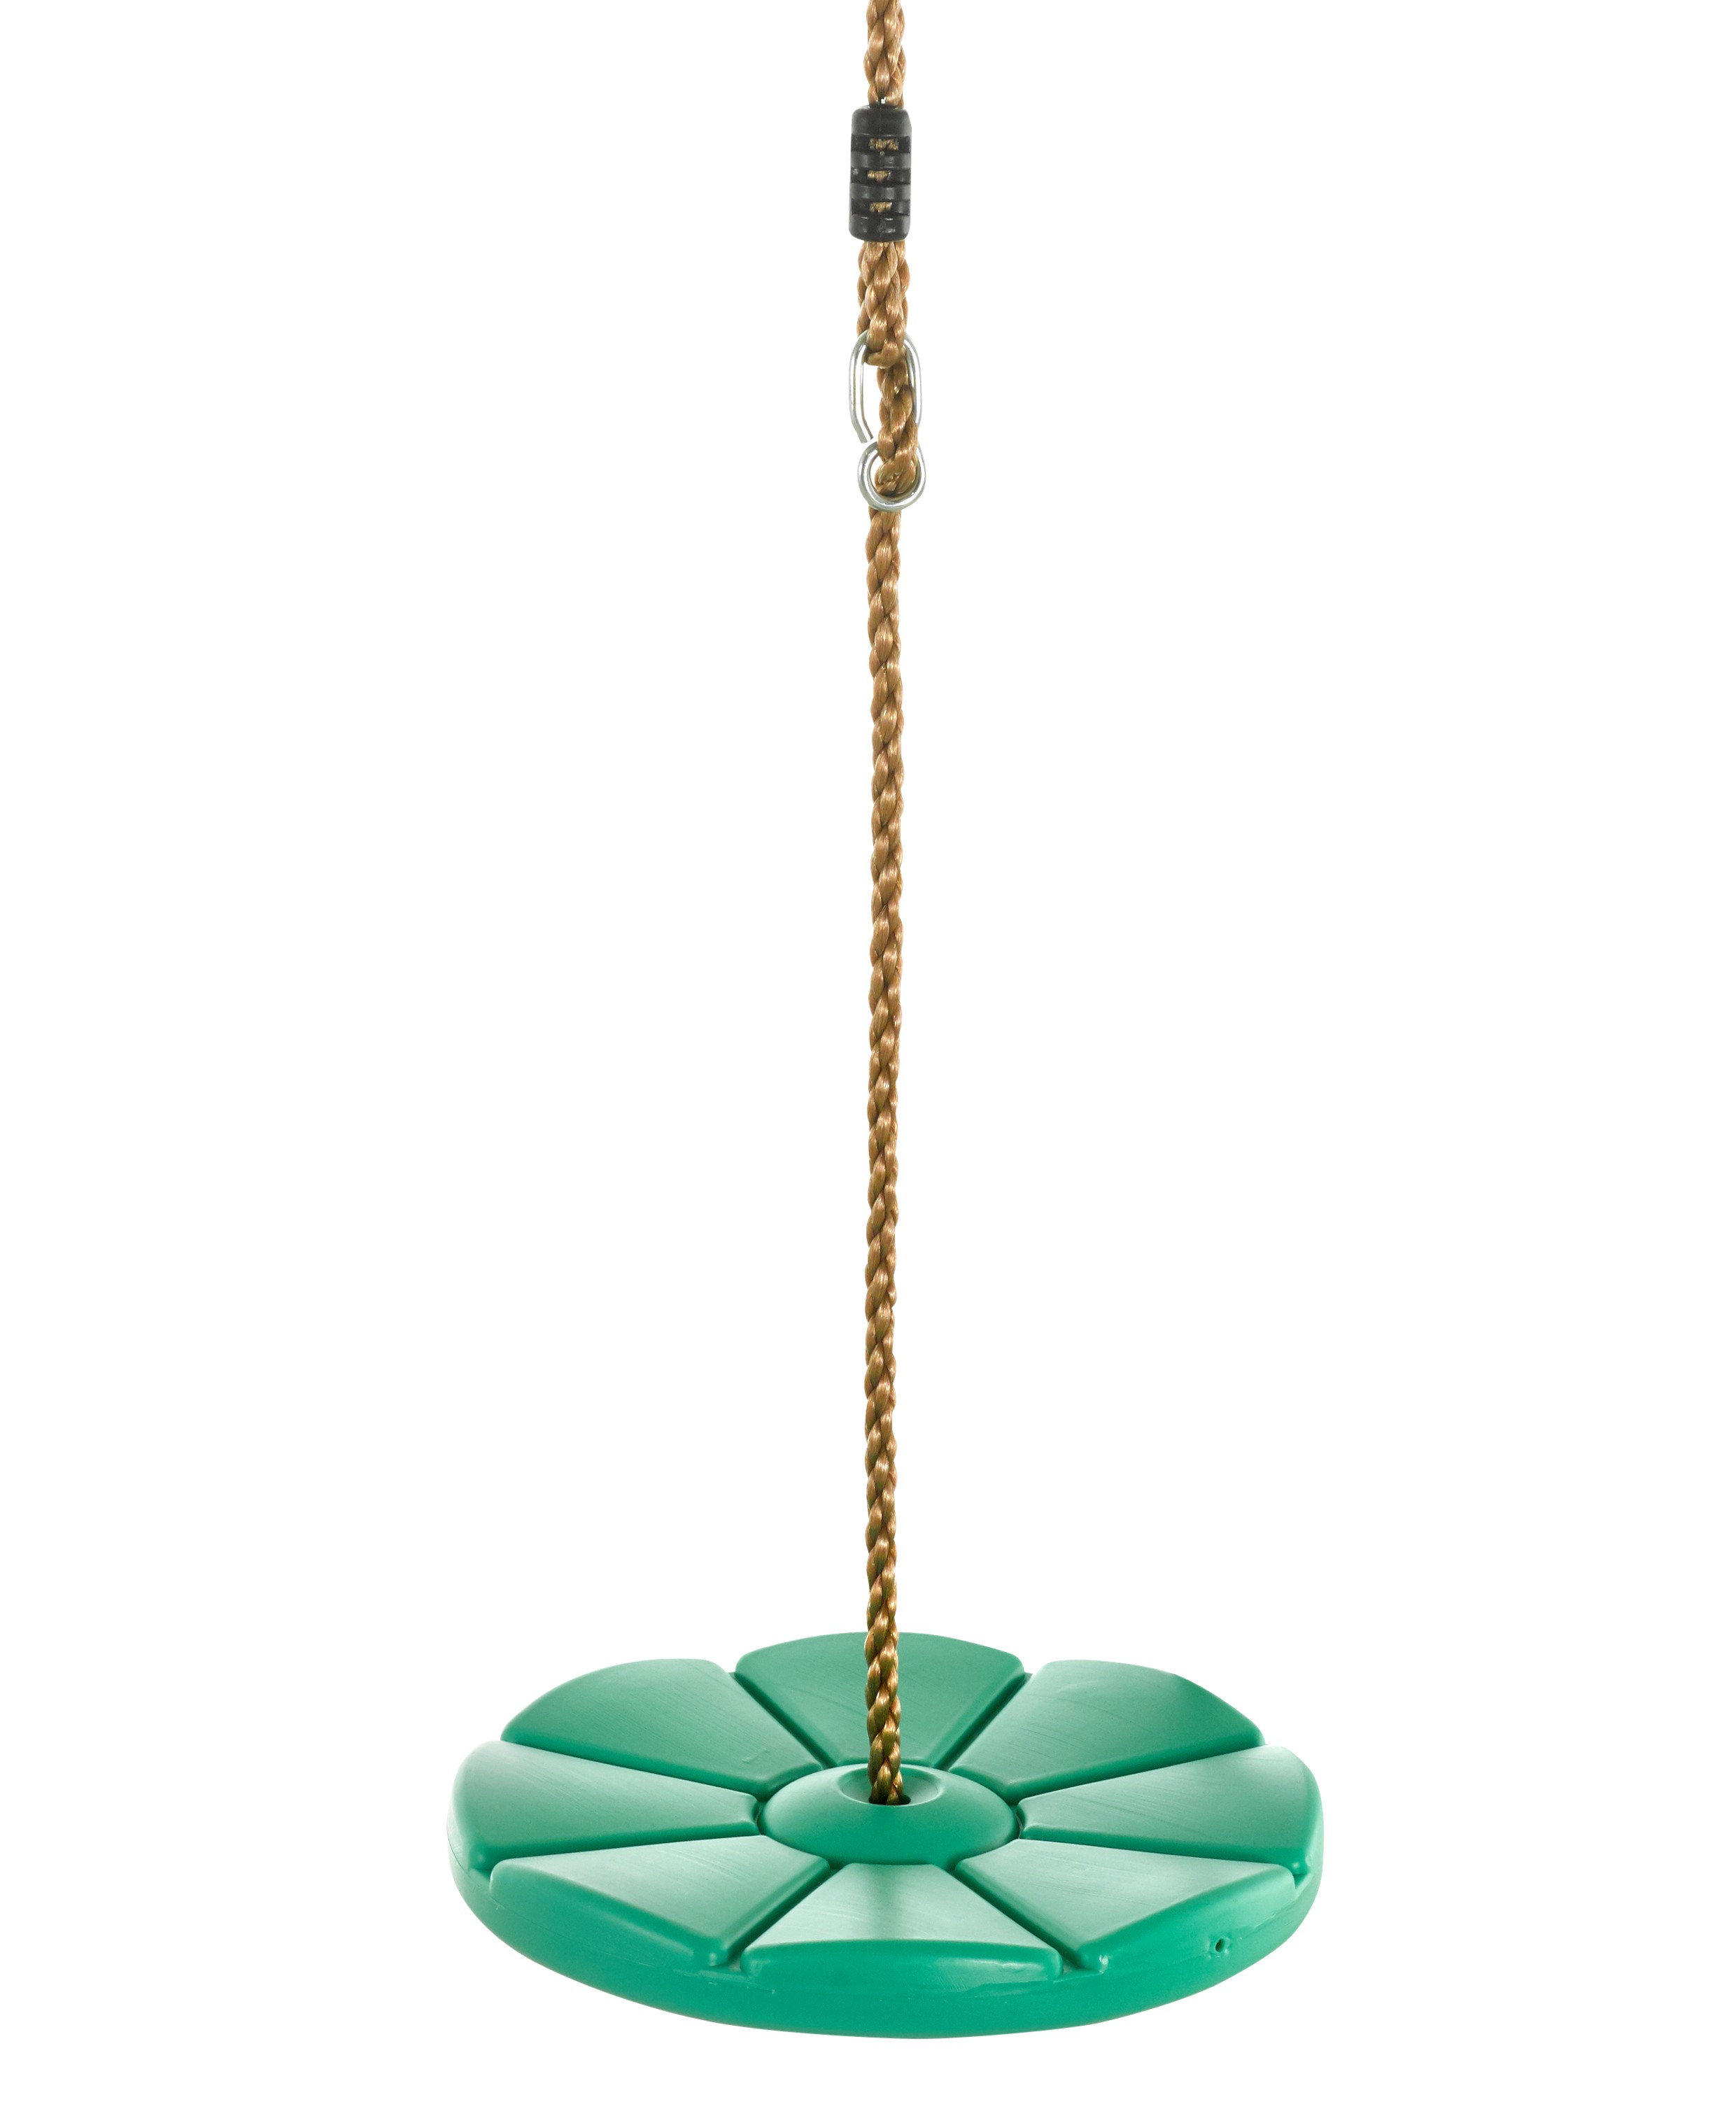 Swingan - Cool Disc Swing with Adjustable Rope - Fully Assembled - Green